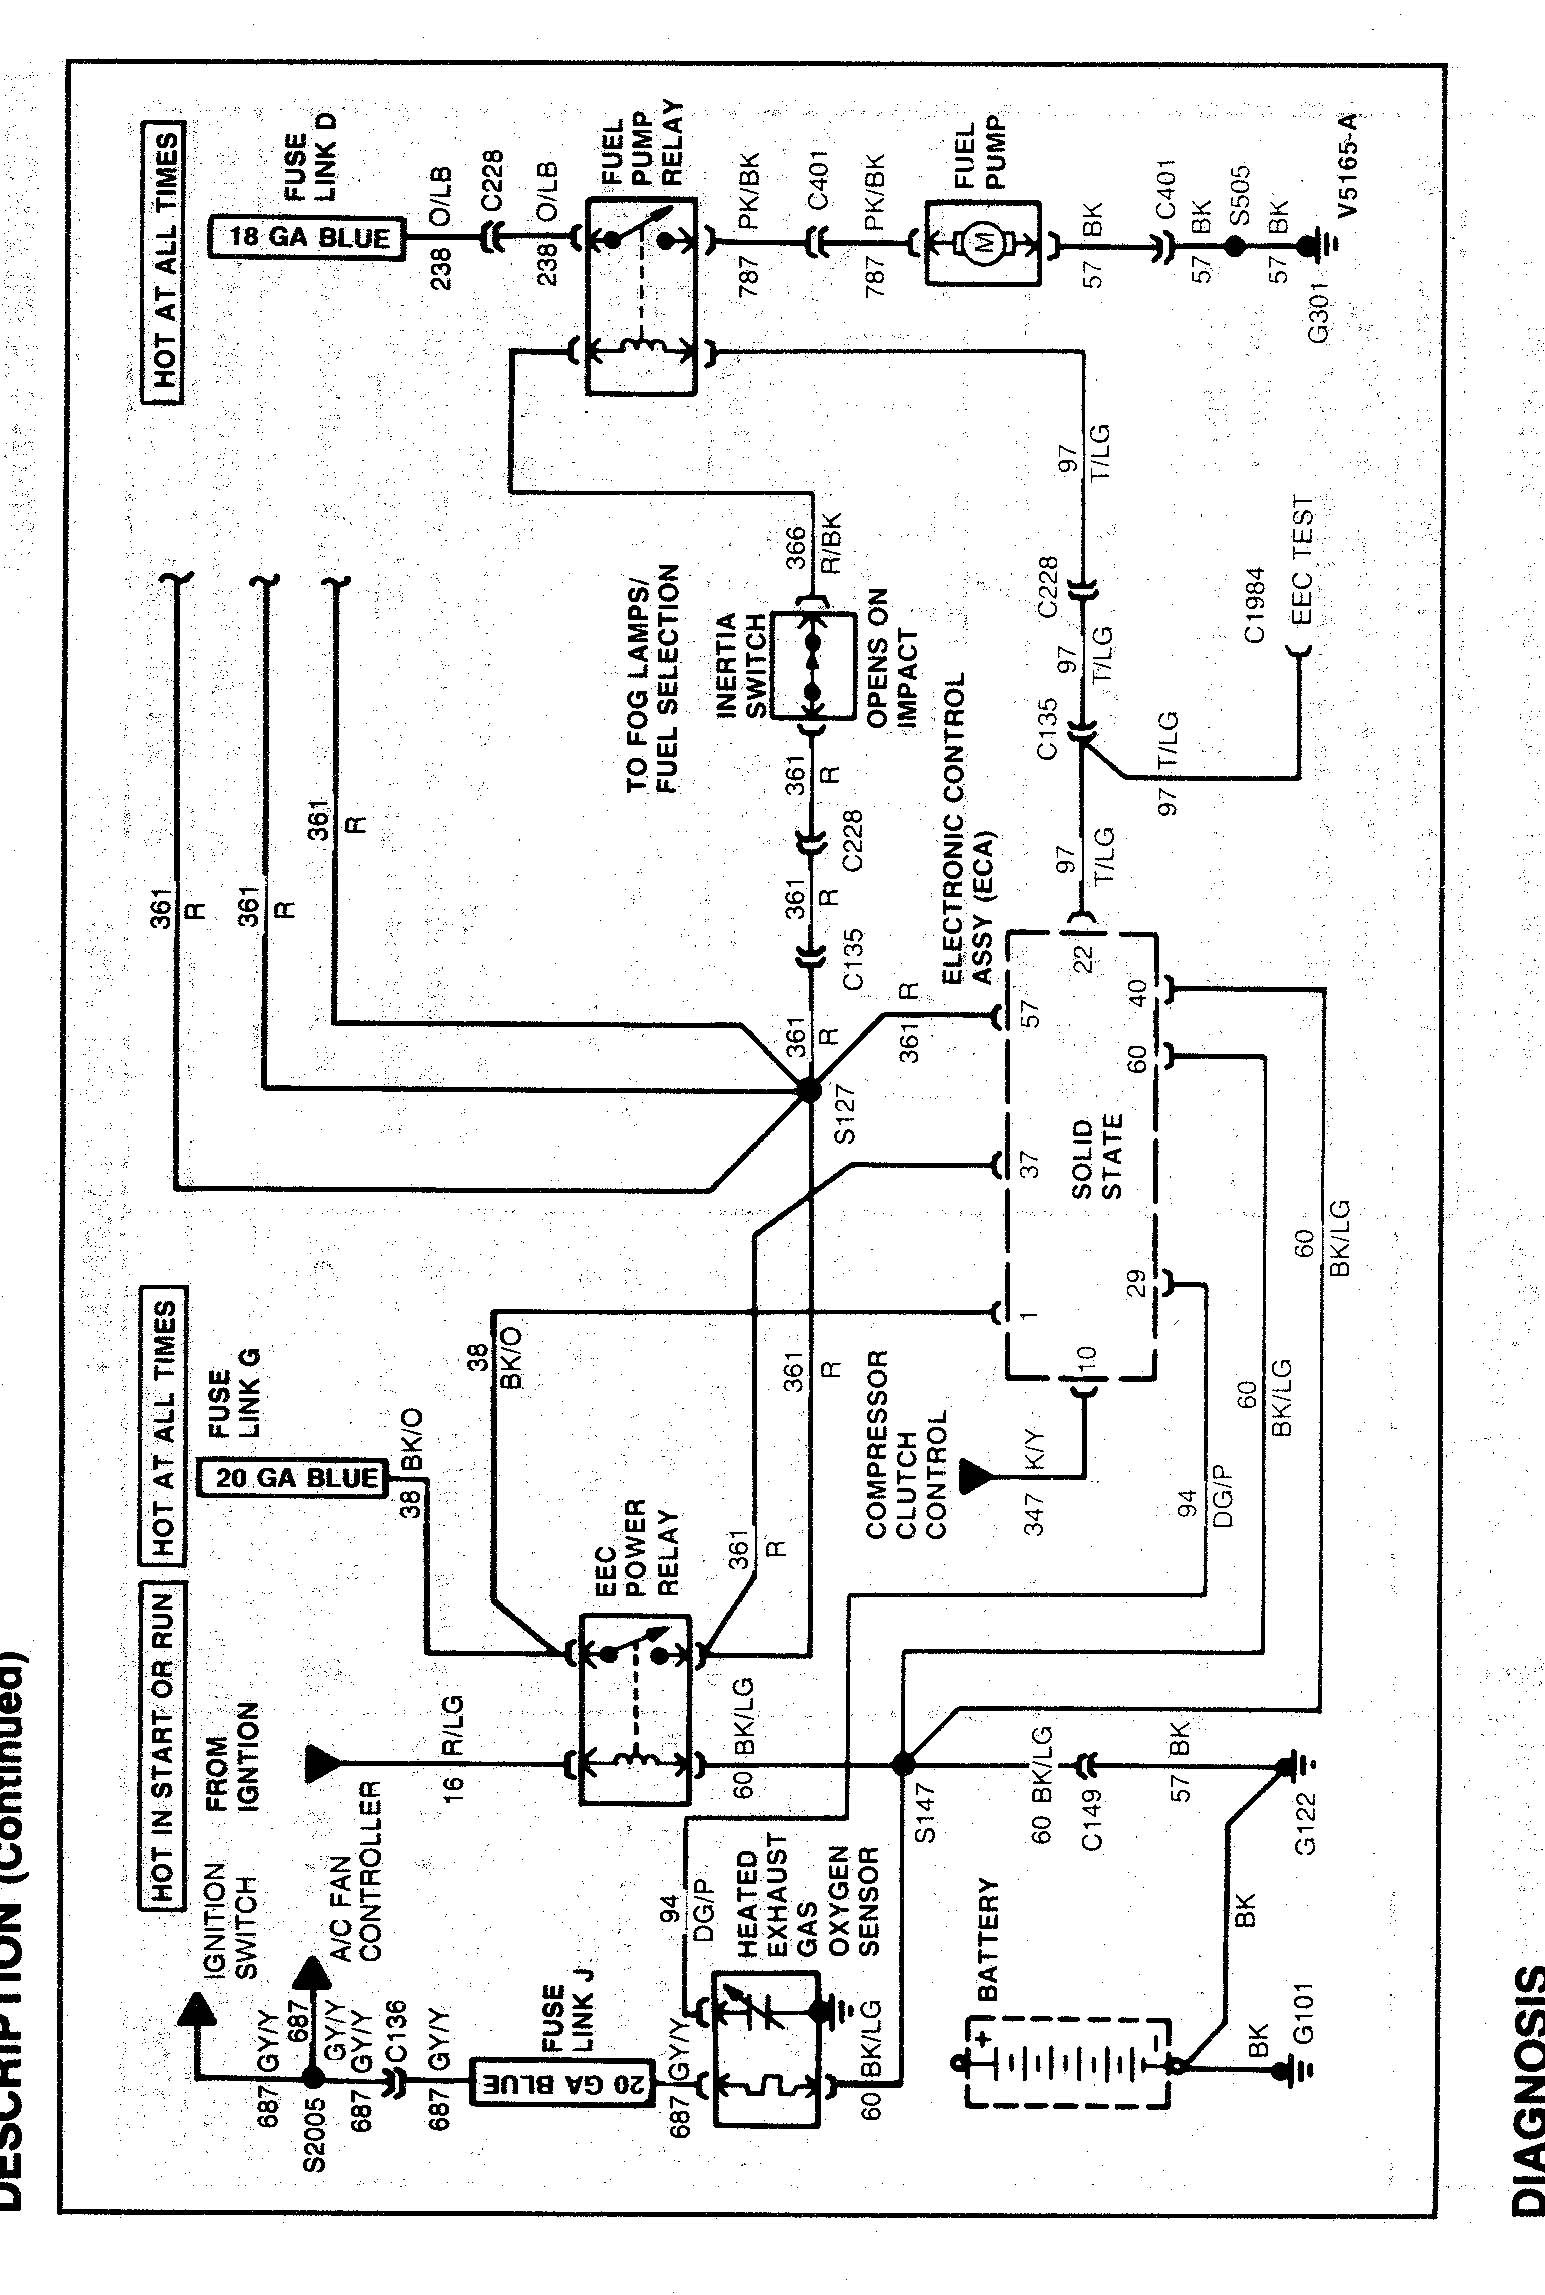 2000 Mustang Gt Fuel Pump Wiring Diagram 40 Images 98 1928d1051592166 May Electrical But Im Not Sure Mustangfuelelectricaldiagram2 1997 Ford Explorer 5 0 1998